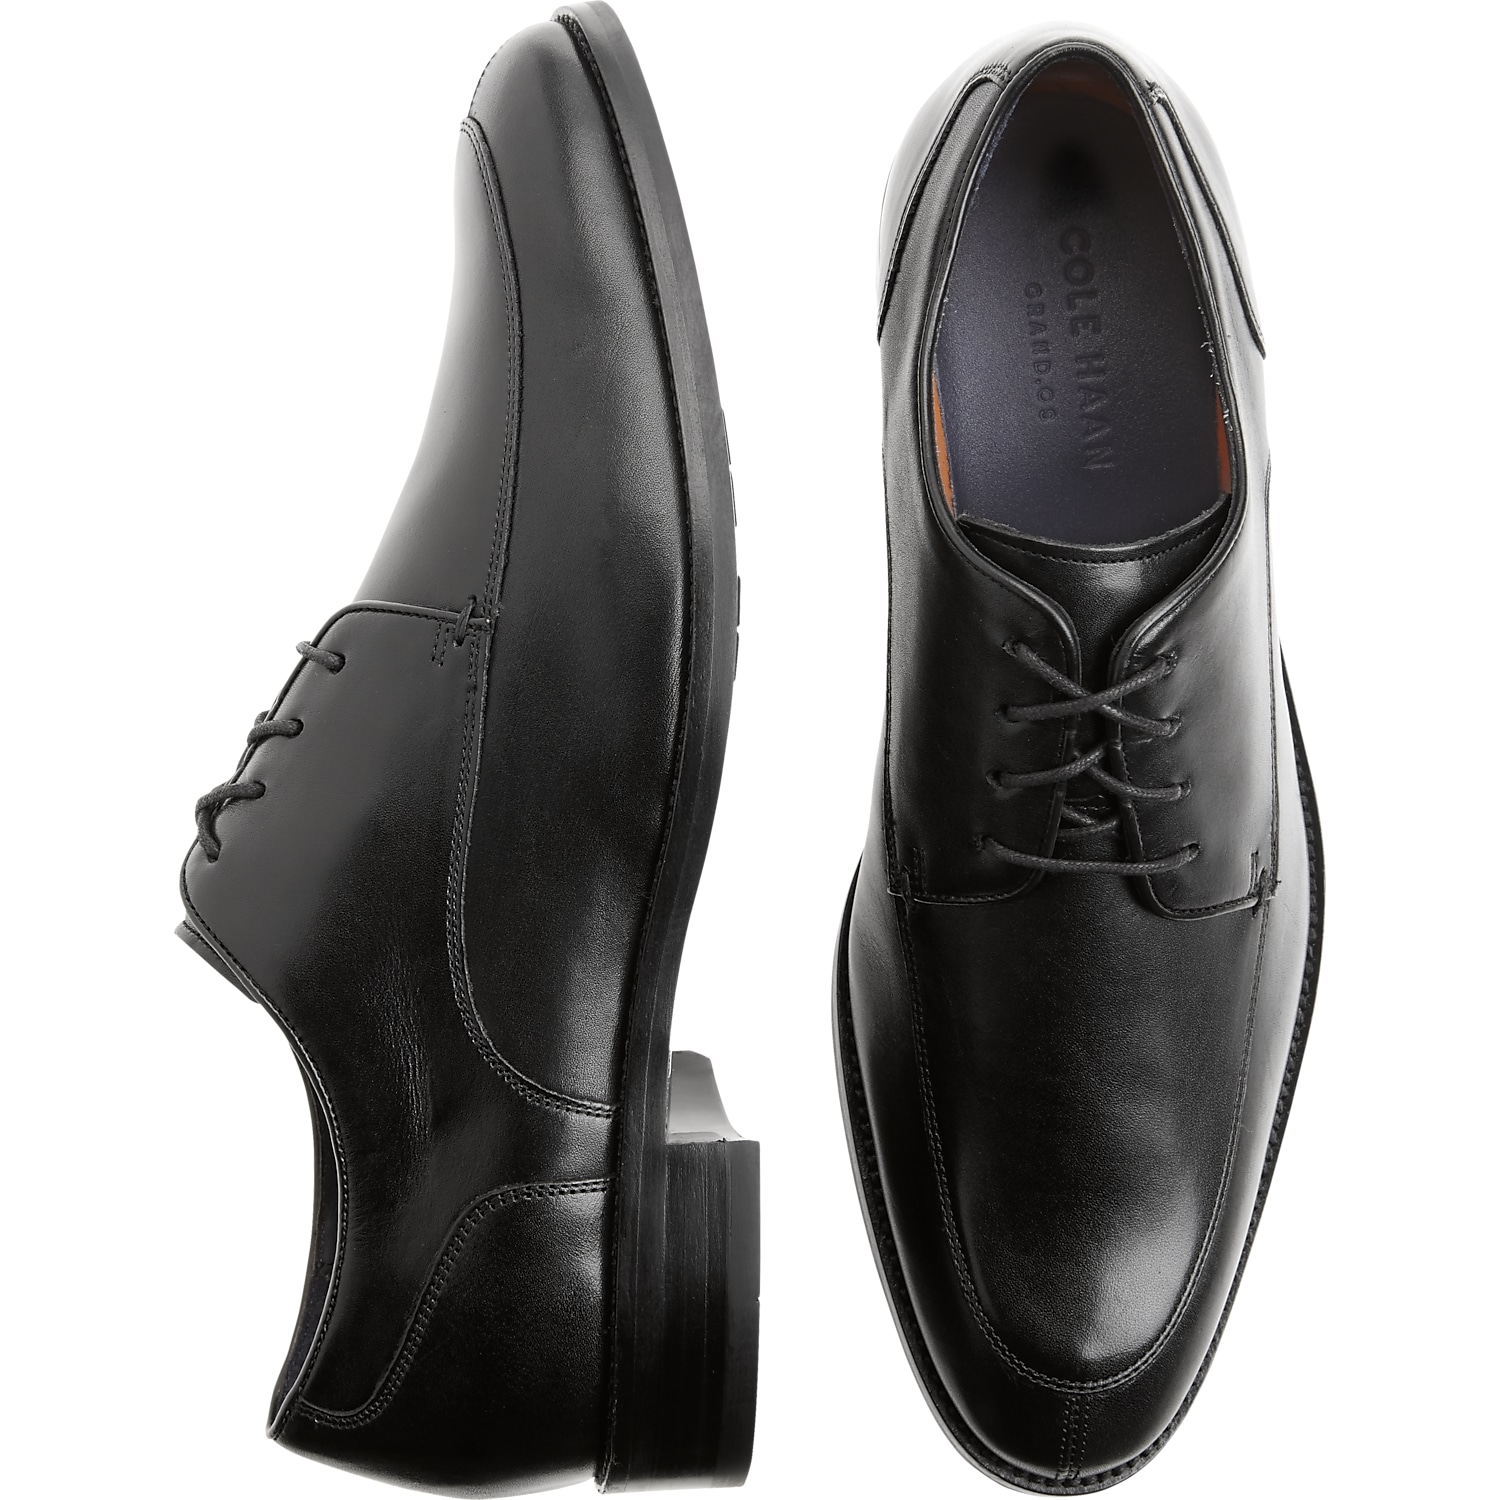 0eba4b57c17f Mens Featured - Cole Haan Lenox Black Oxford - Men s Wearhouse